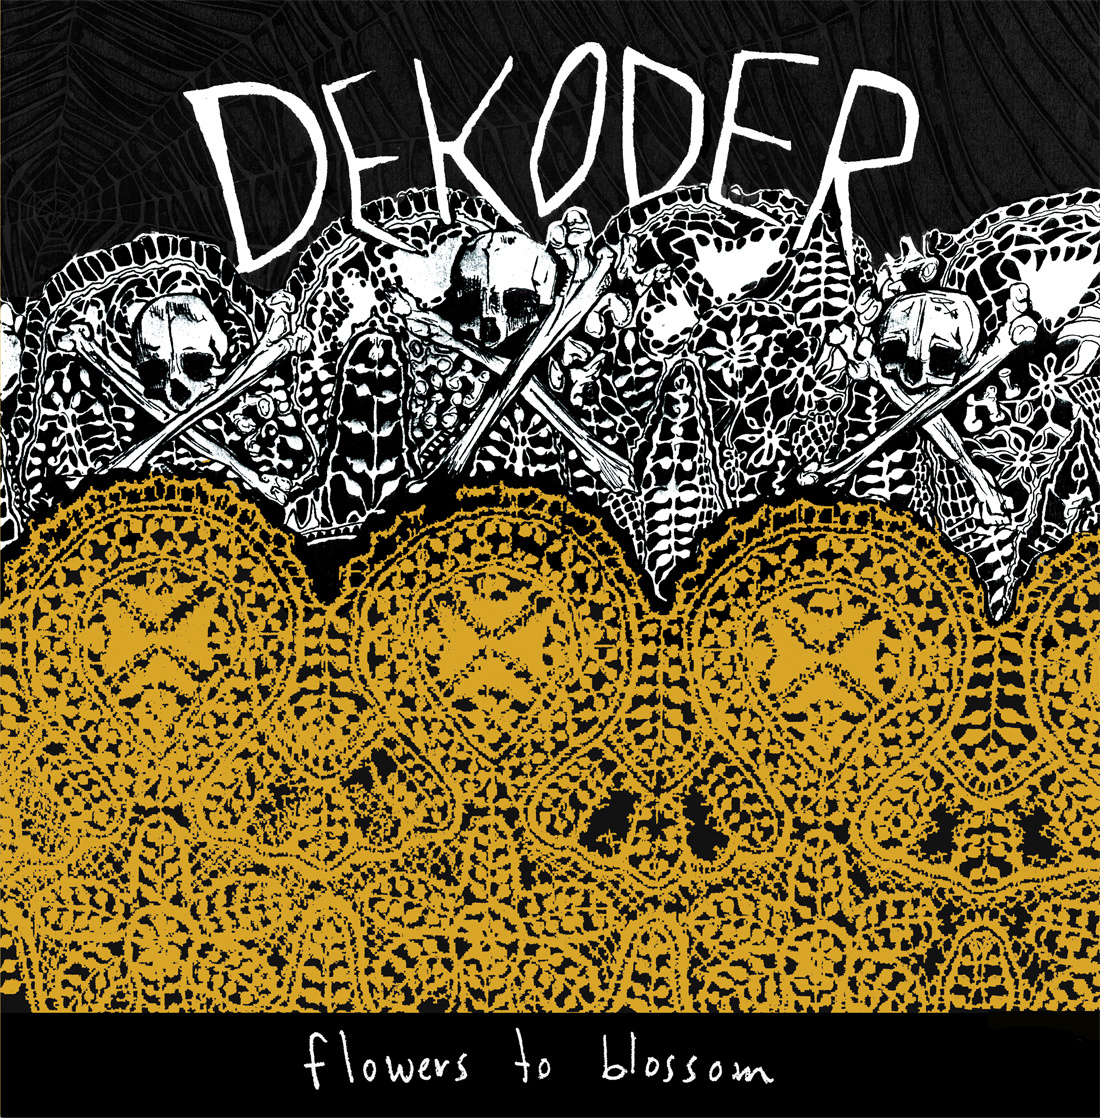 Dekoder - Flowers to Clossom